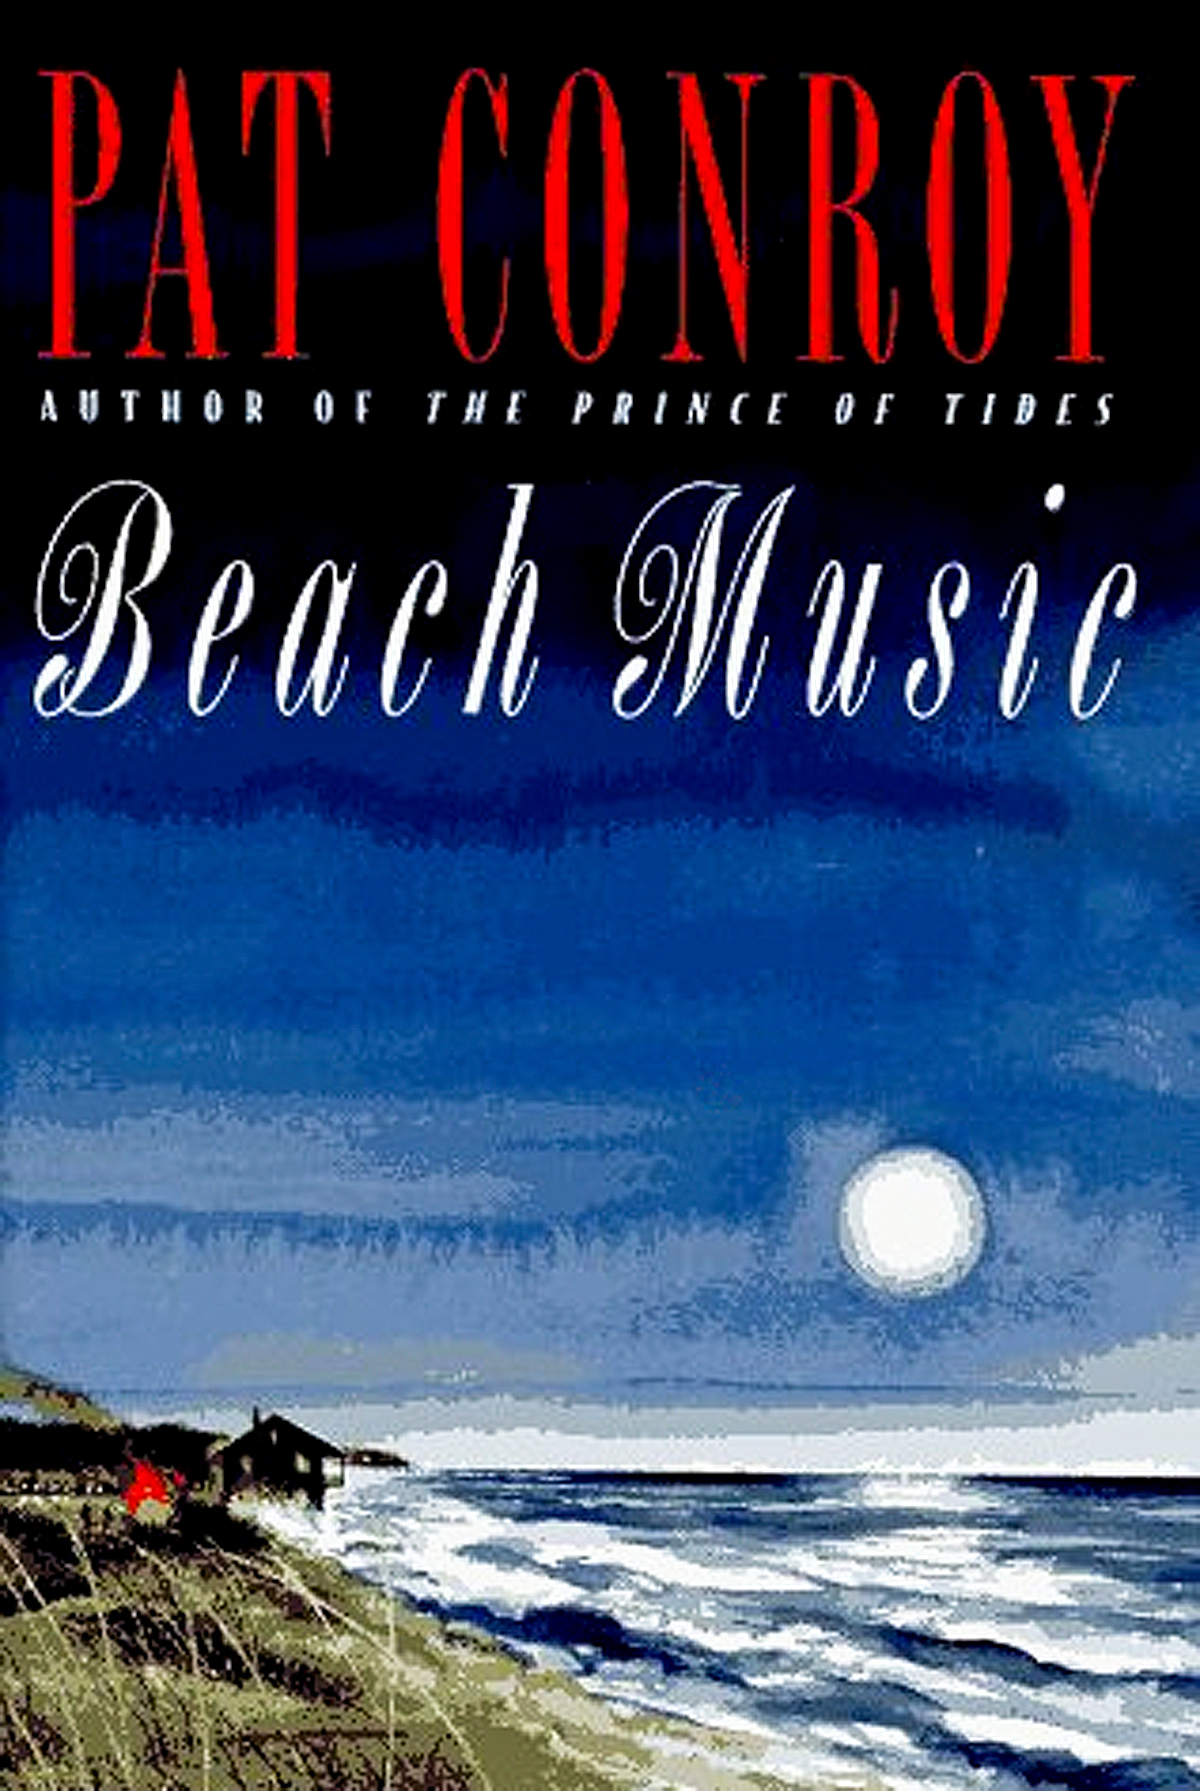 PatConroy_BeachMusic